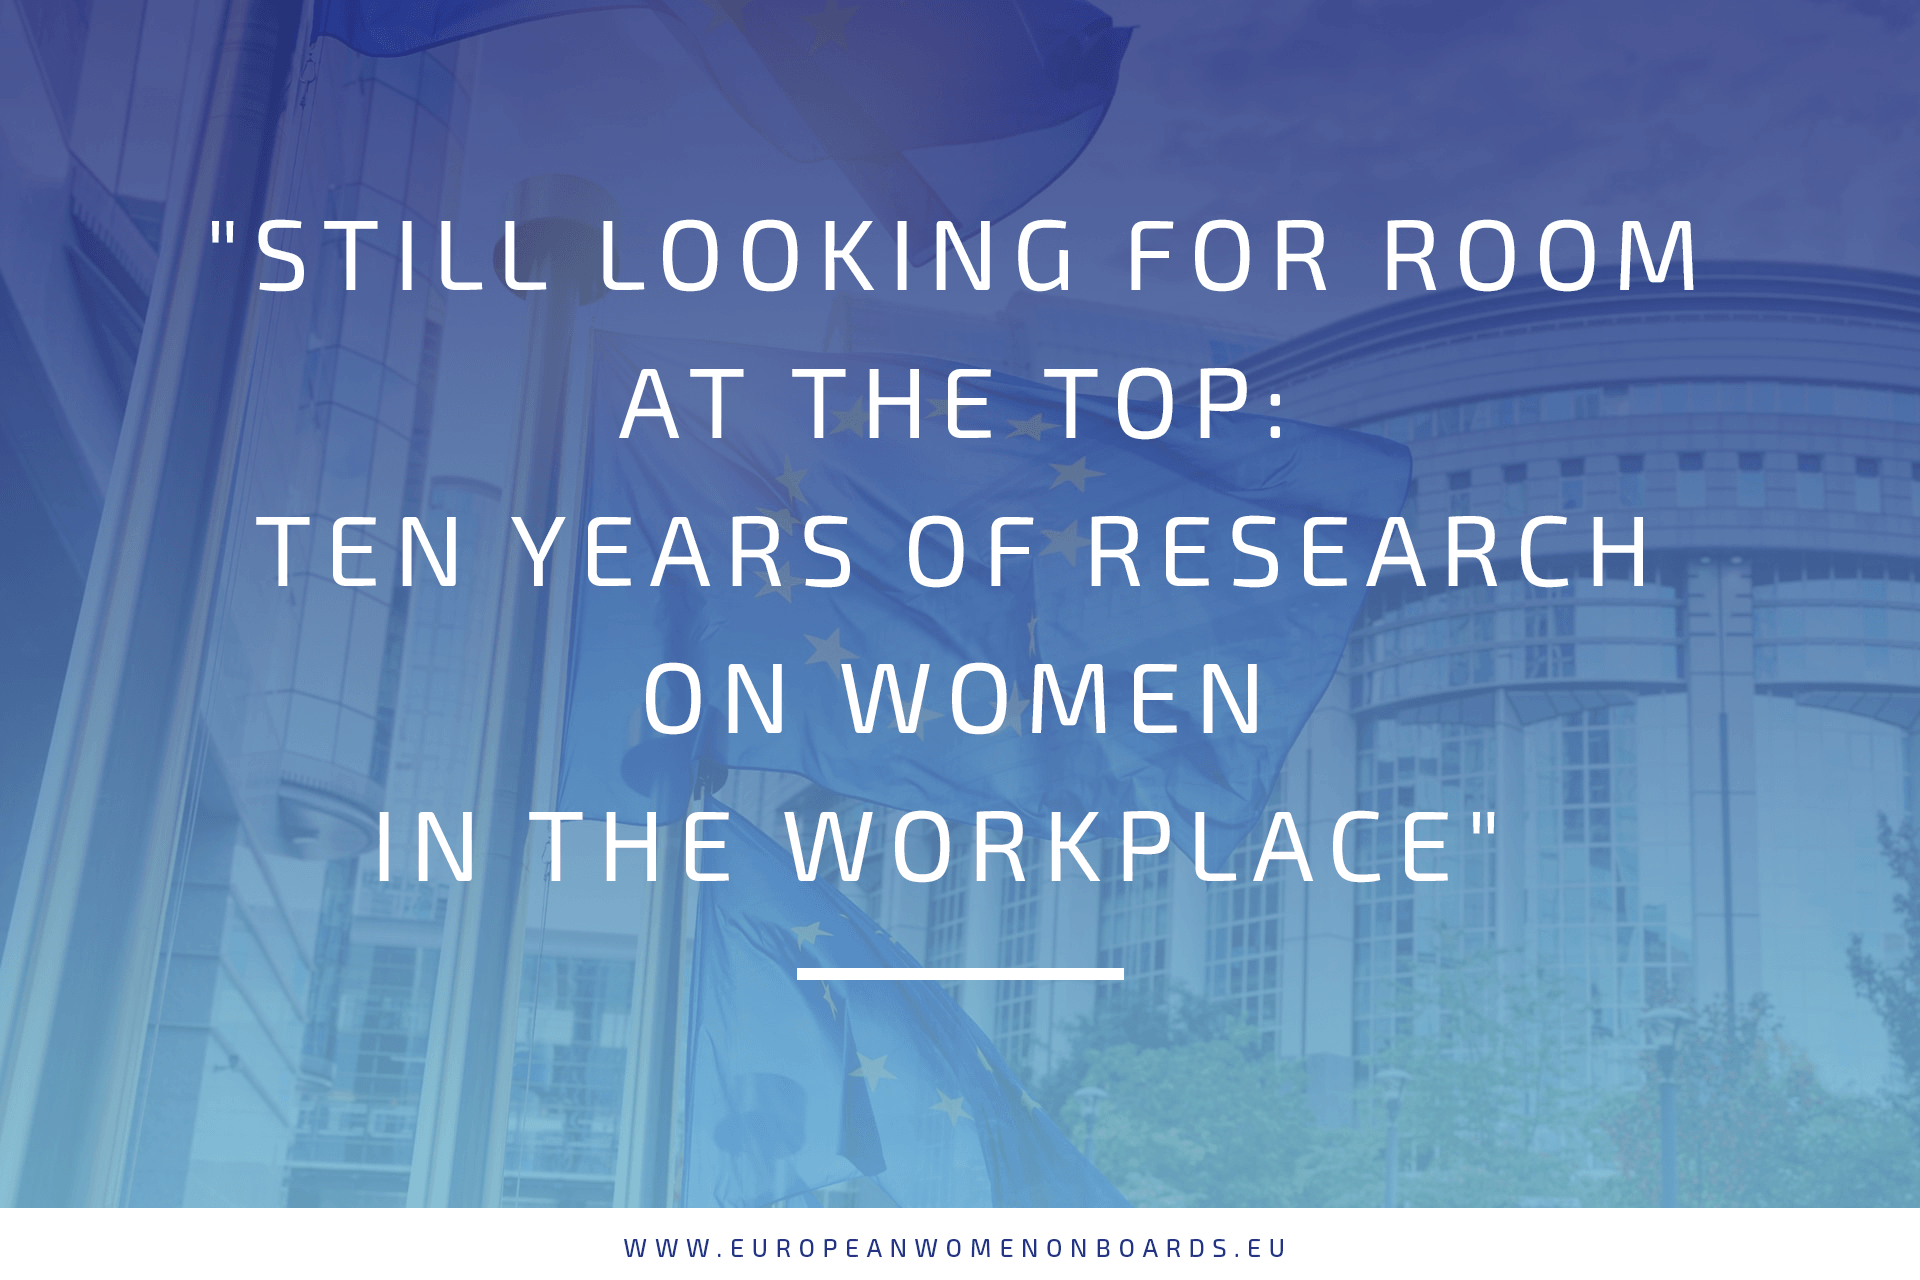 """Still Looking for room at the top: Ten years of research on women in the workplace"" by Sandrine Devillard, Vivian Hunt, and Lareina Yee, March 2018."